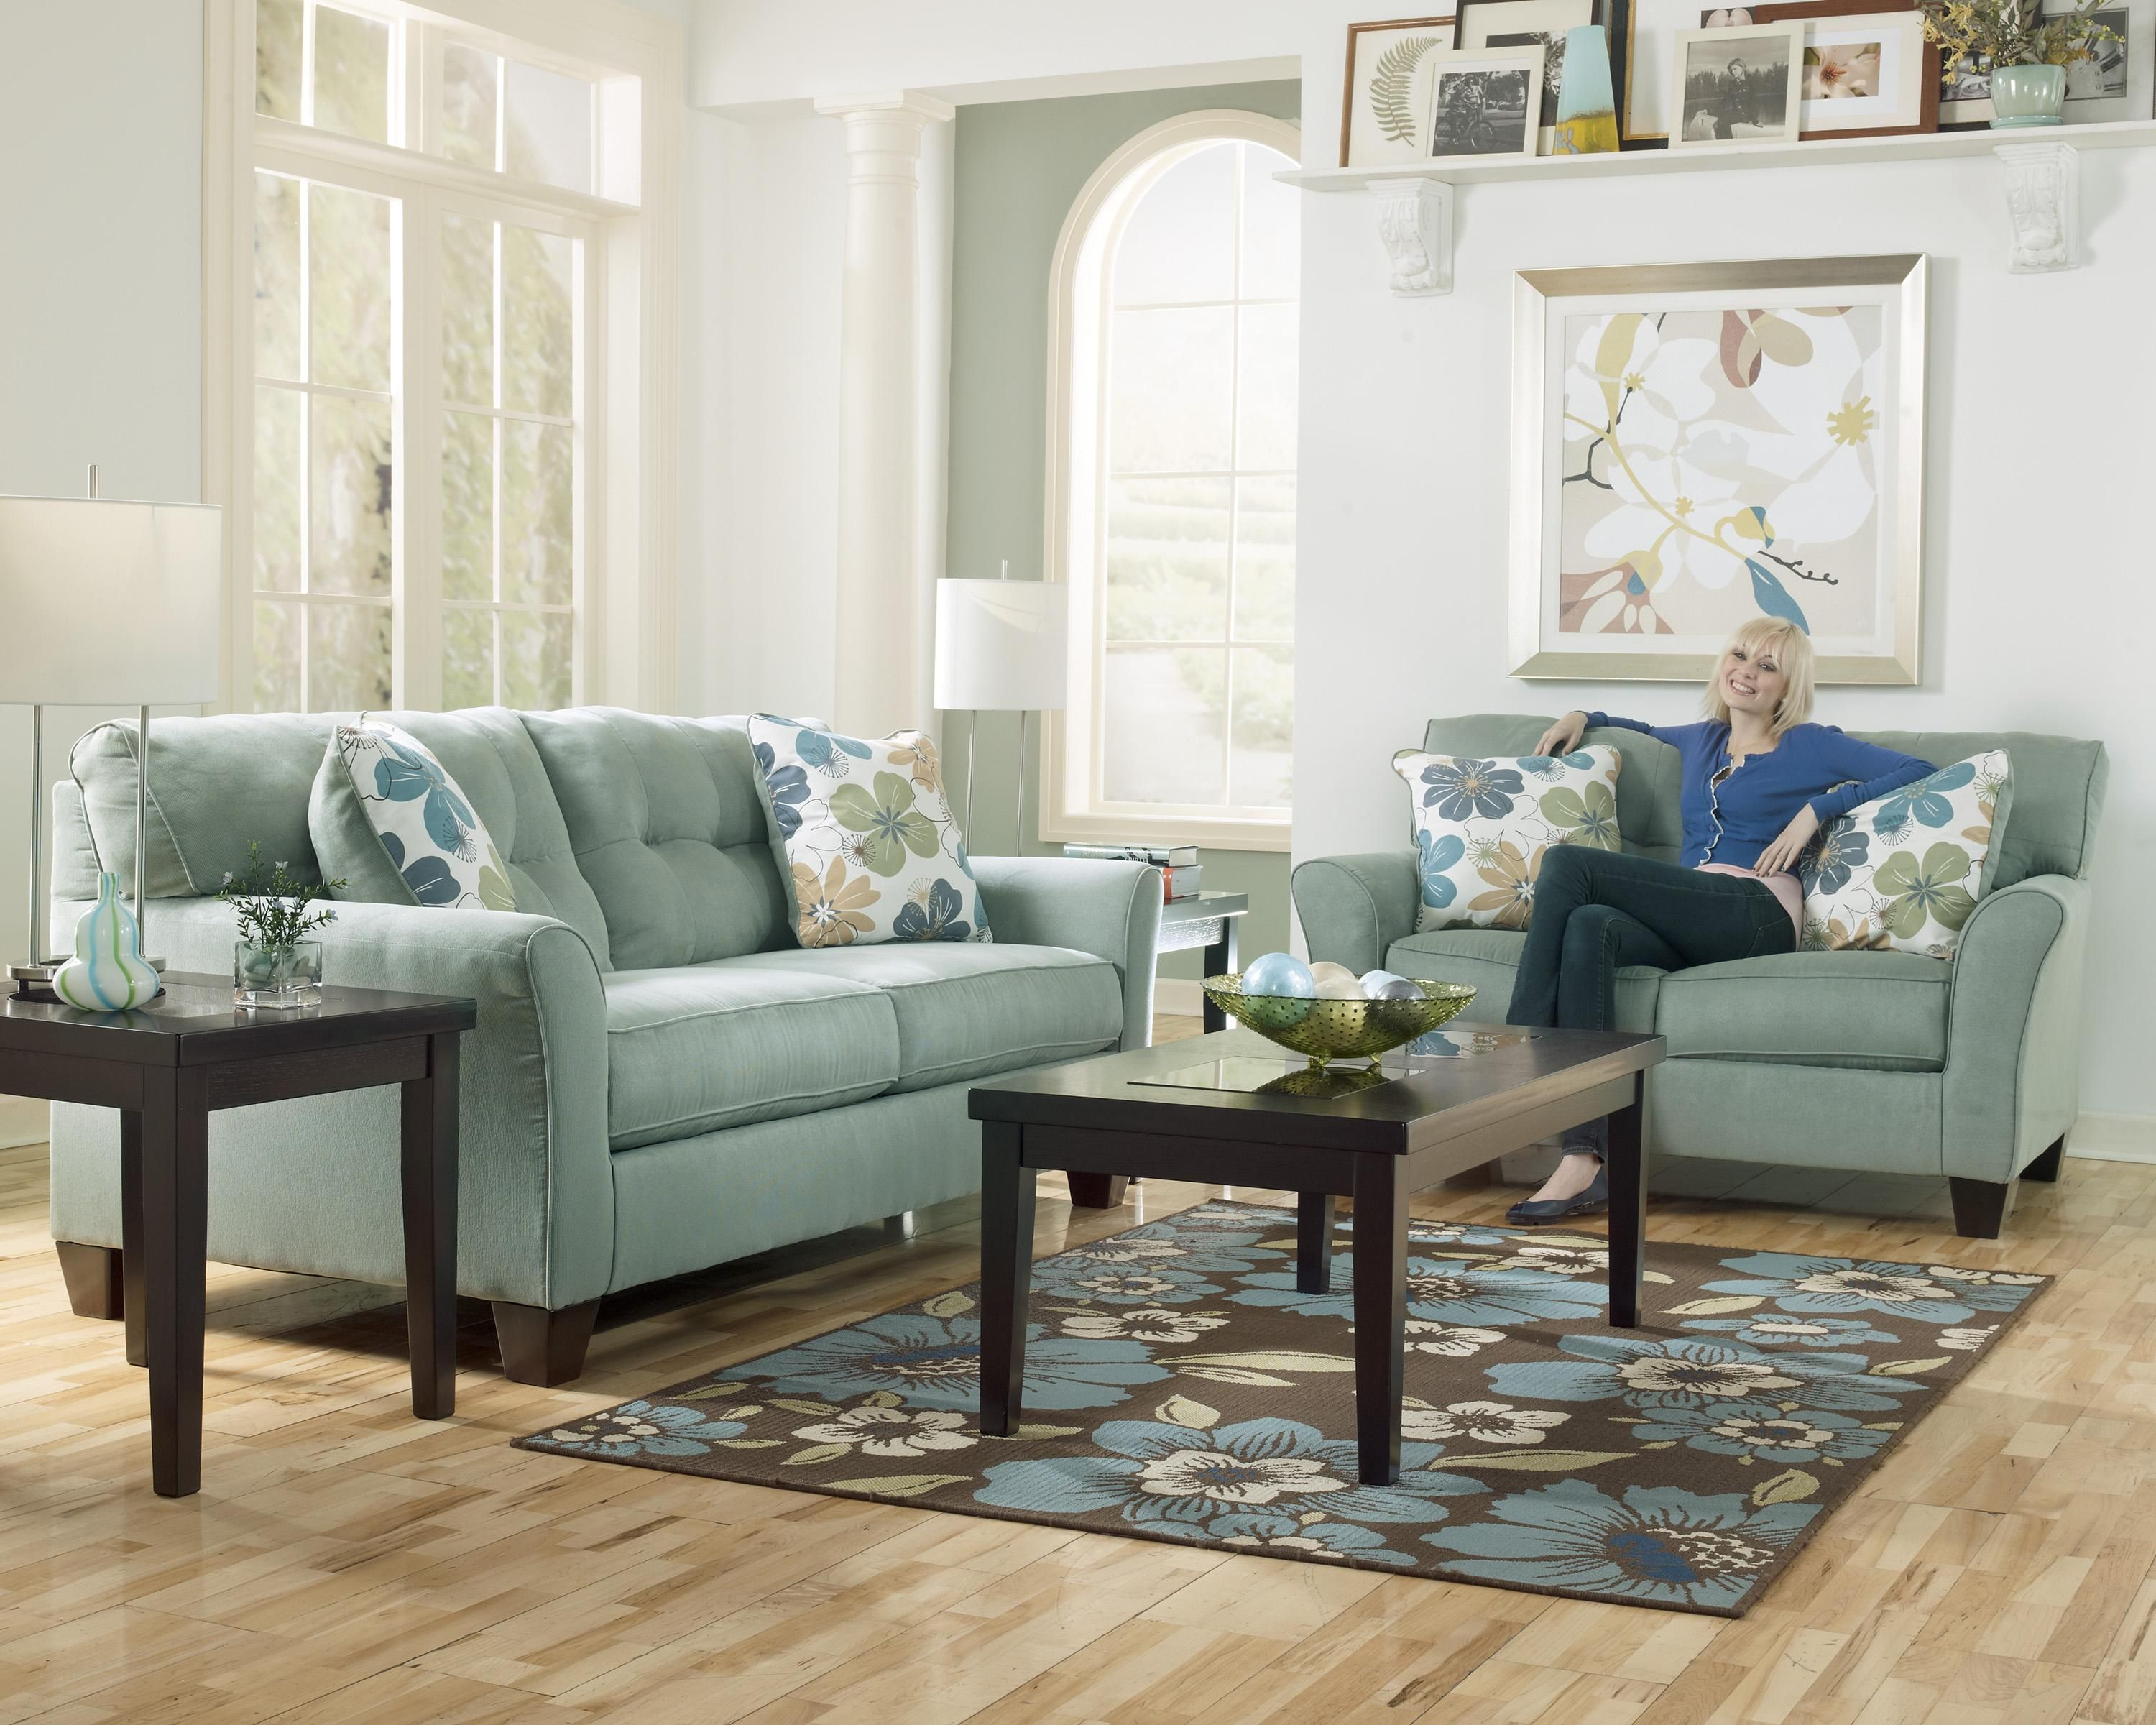 Kylee By Signature Design By Ashley Furniture Aqua Teal Couch I Just Bought This Sofa And The Chaise Living Room Sets Furniture Grand Furniture